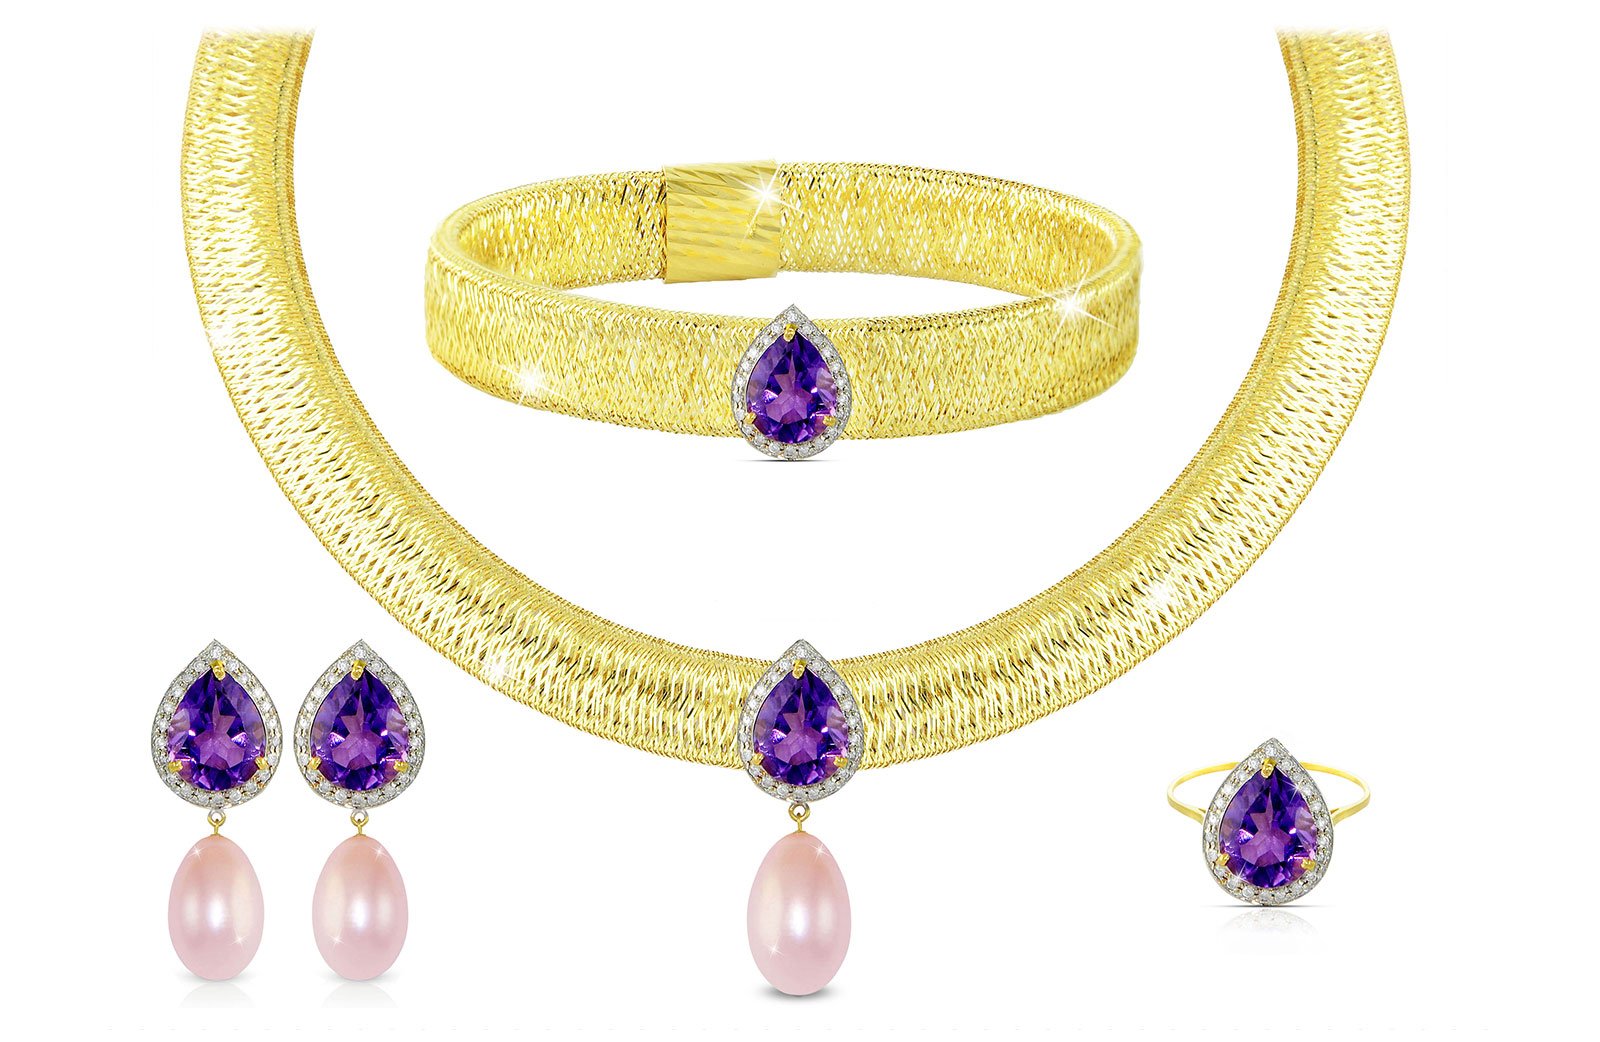 Vera Perla 18K Gold 0.60ct Diamonds, Amethyst and 13mm Purple Pearl Jewelry Set - 4 pcs.